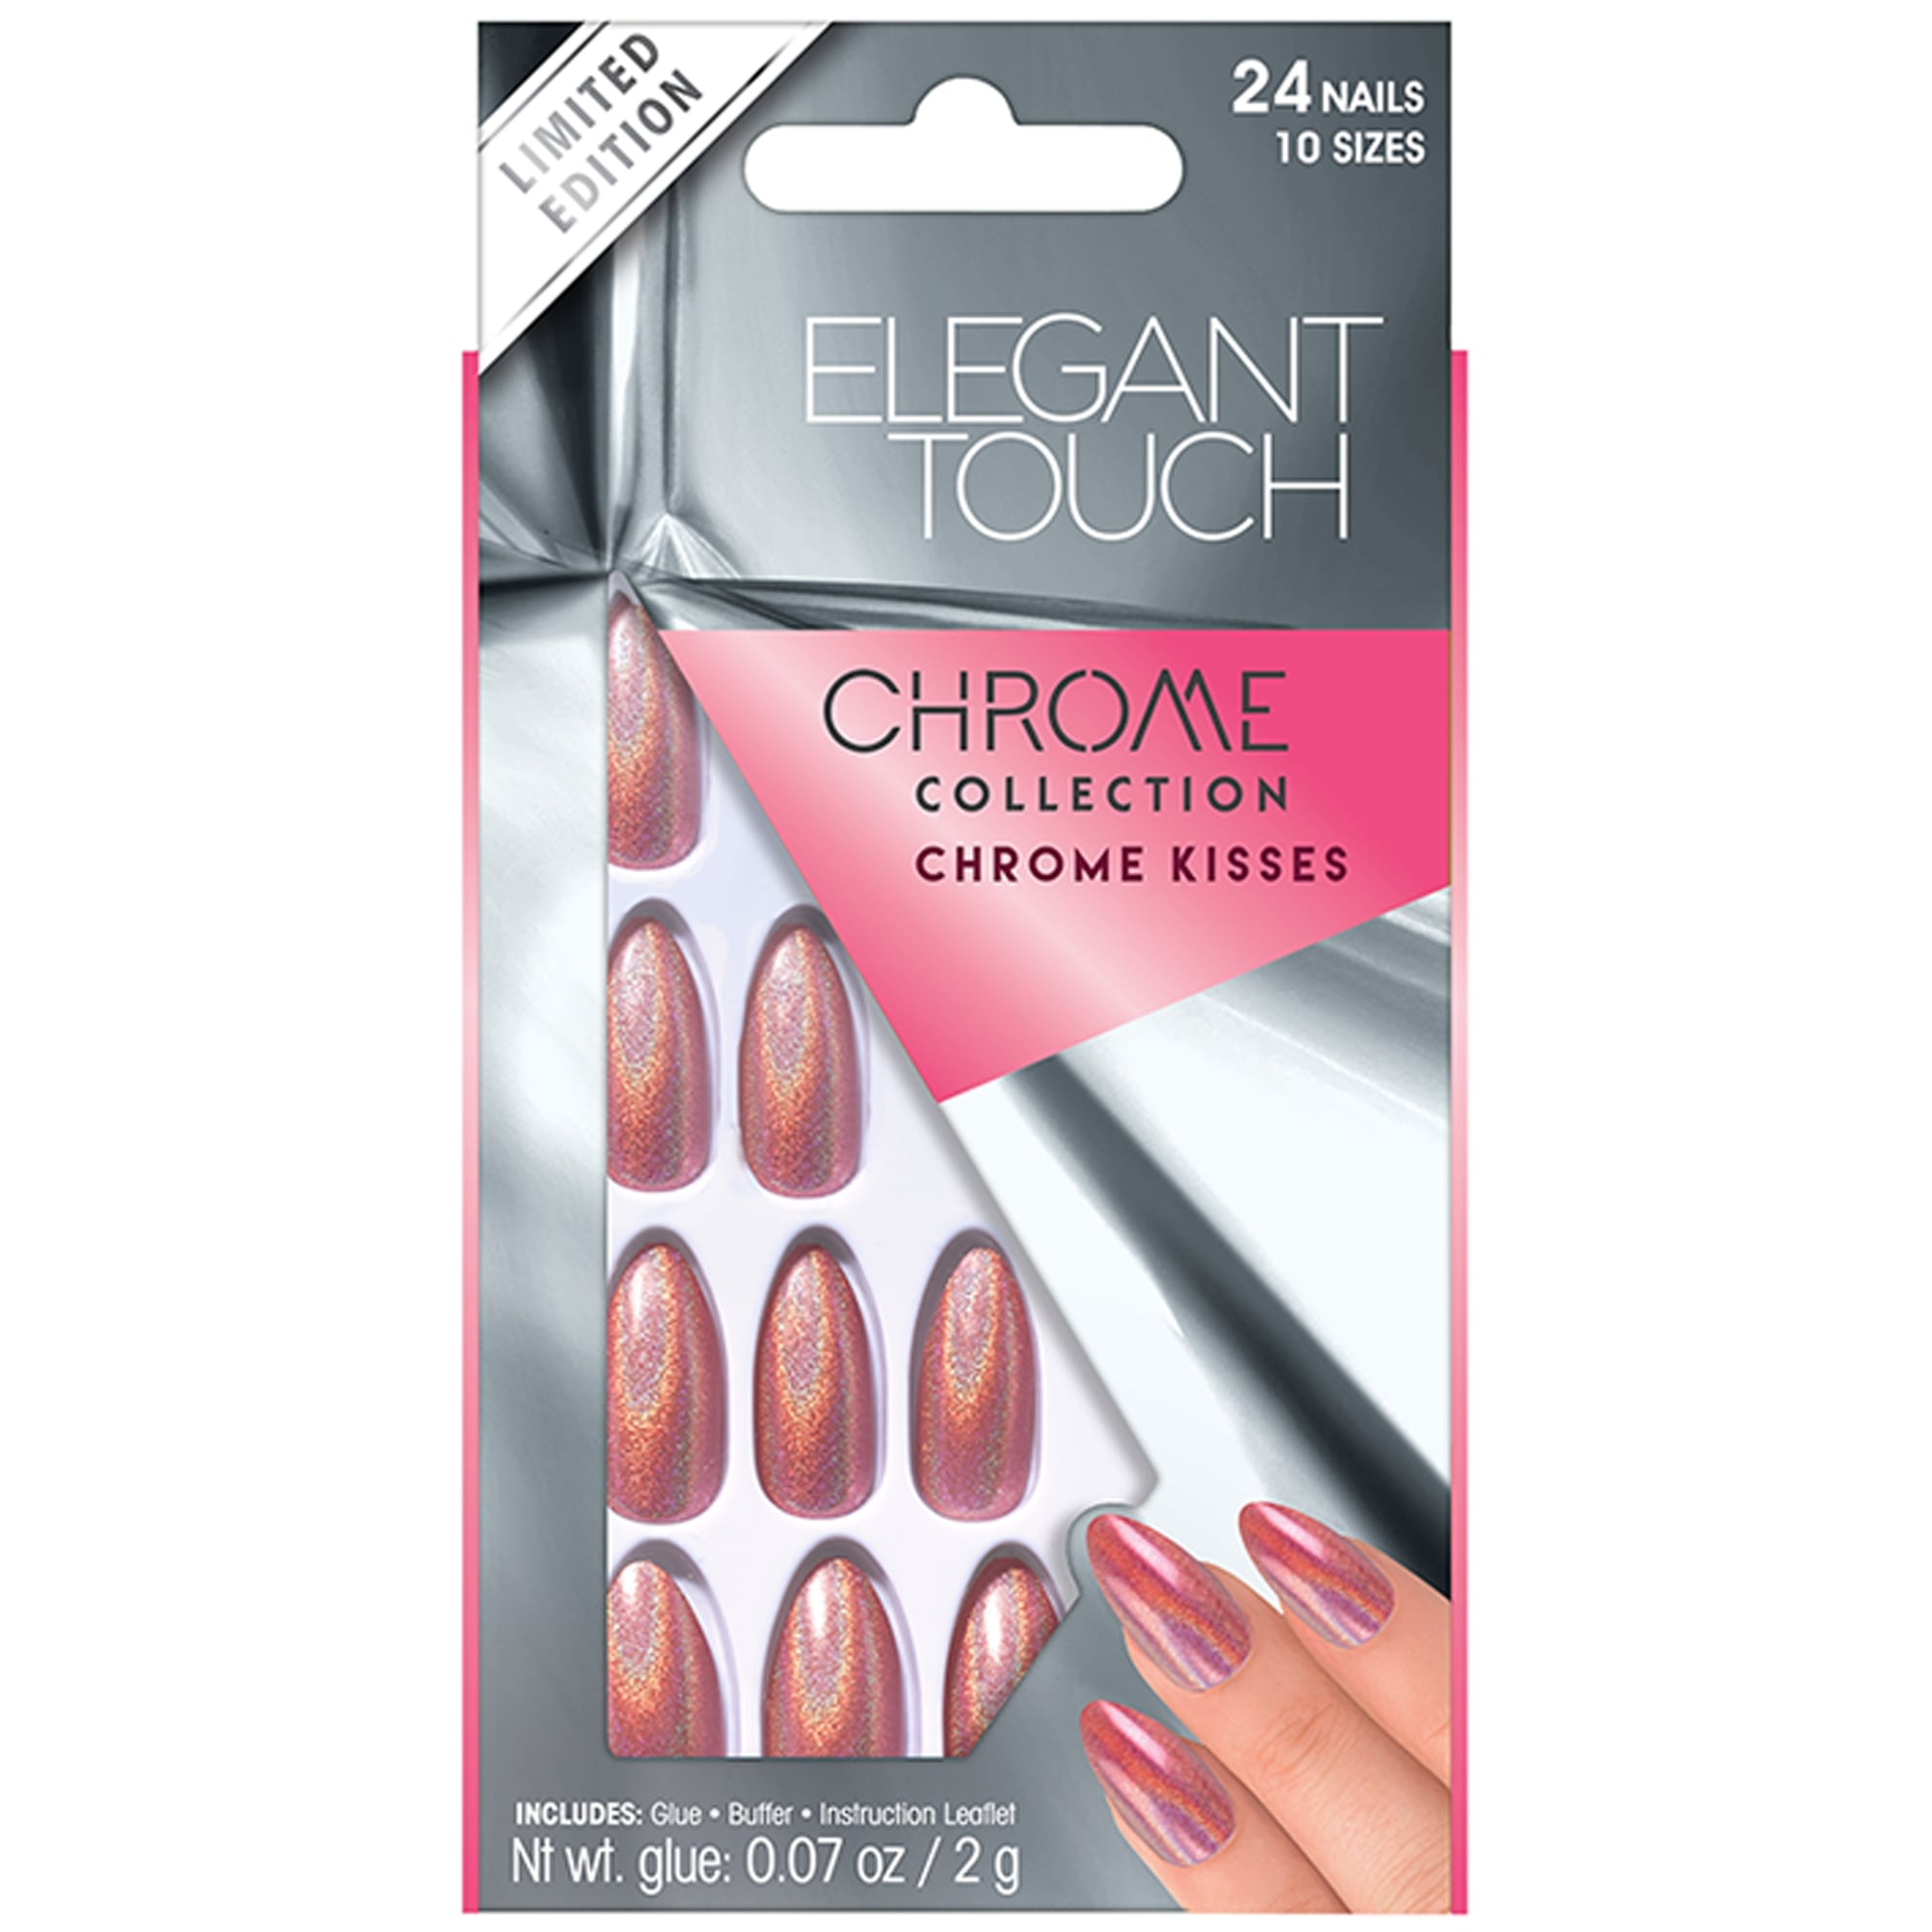 Elegant Touch Chrome Holographic False Nails - Chrome Kisses